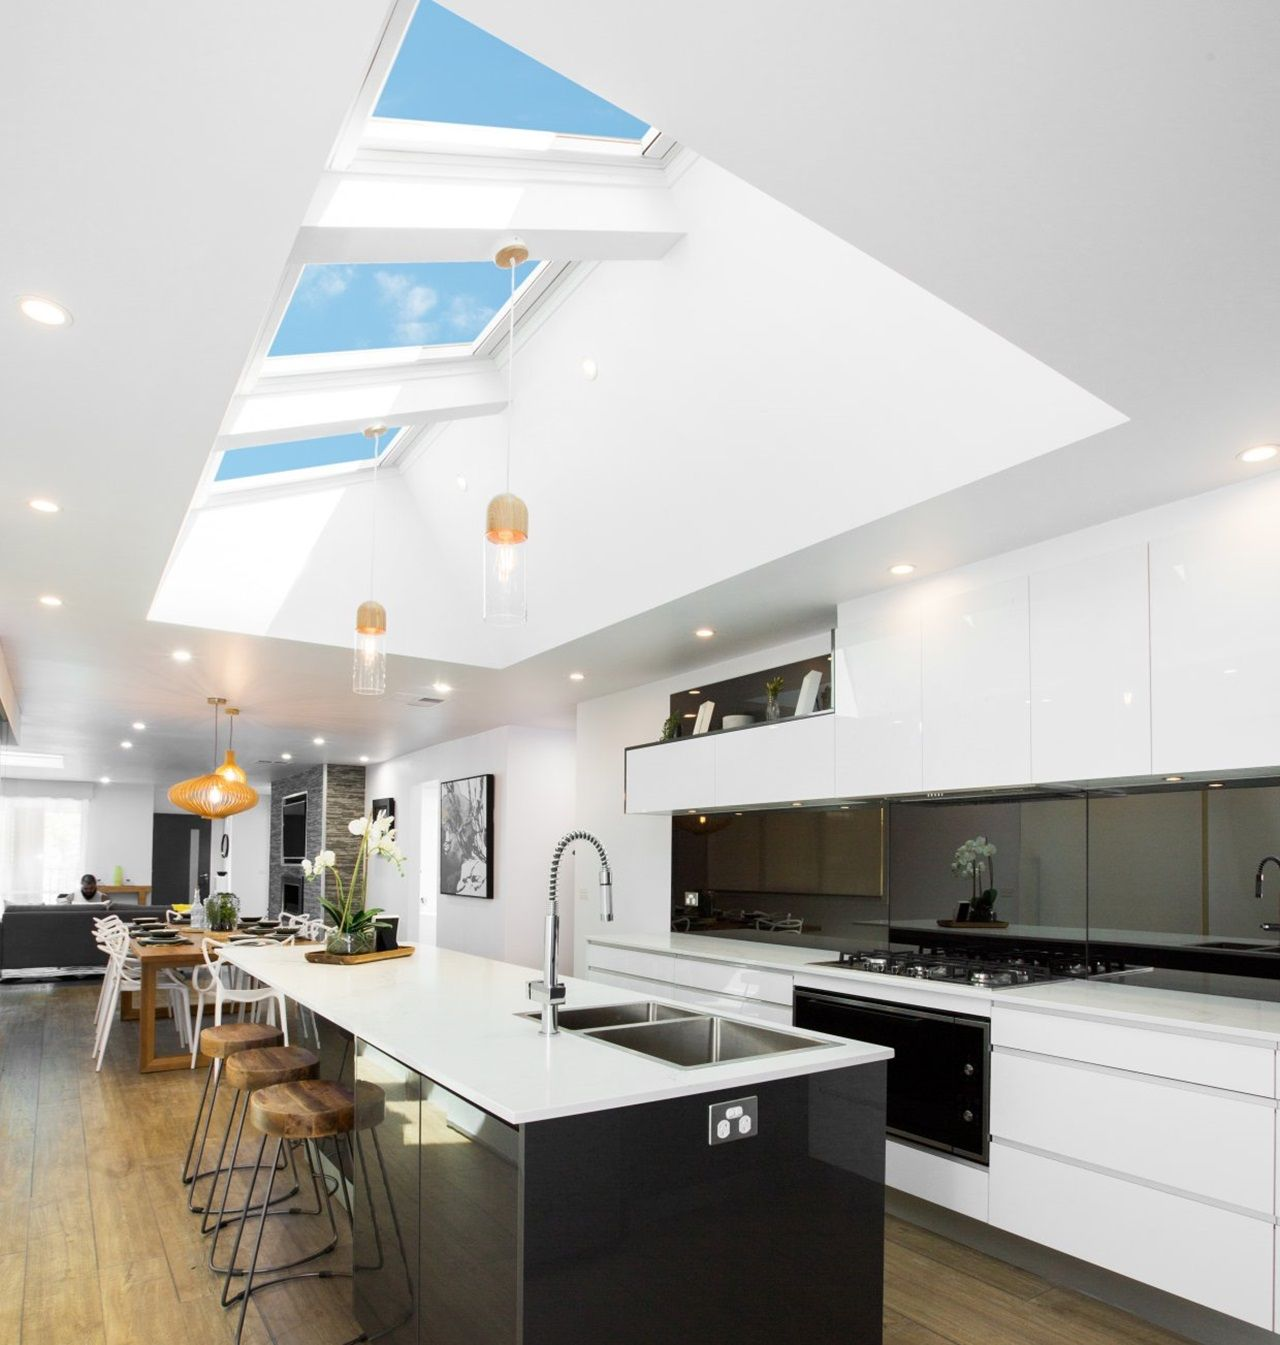 25 Captivating Ideas For Kitchens With Skylights: Más De 25 Ideas Increíbles Sobre Kitchen Skylights En